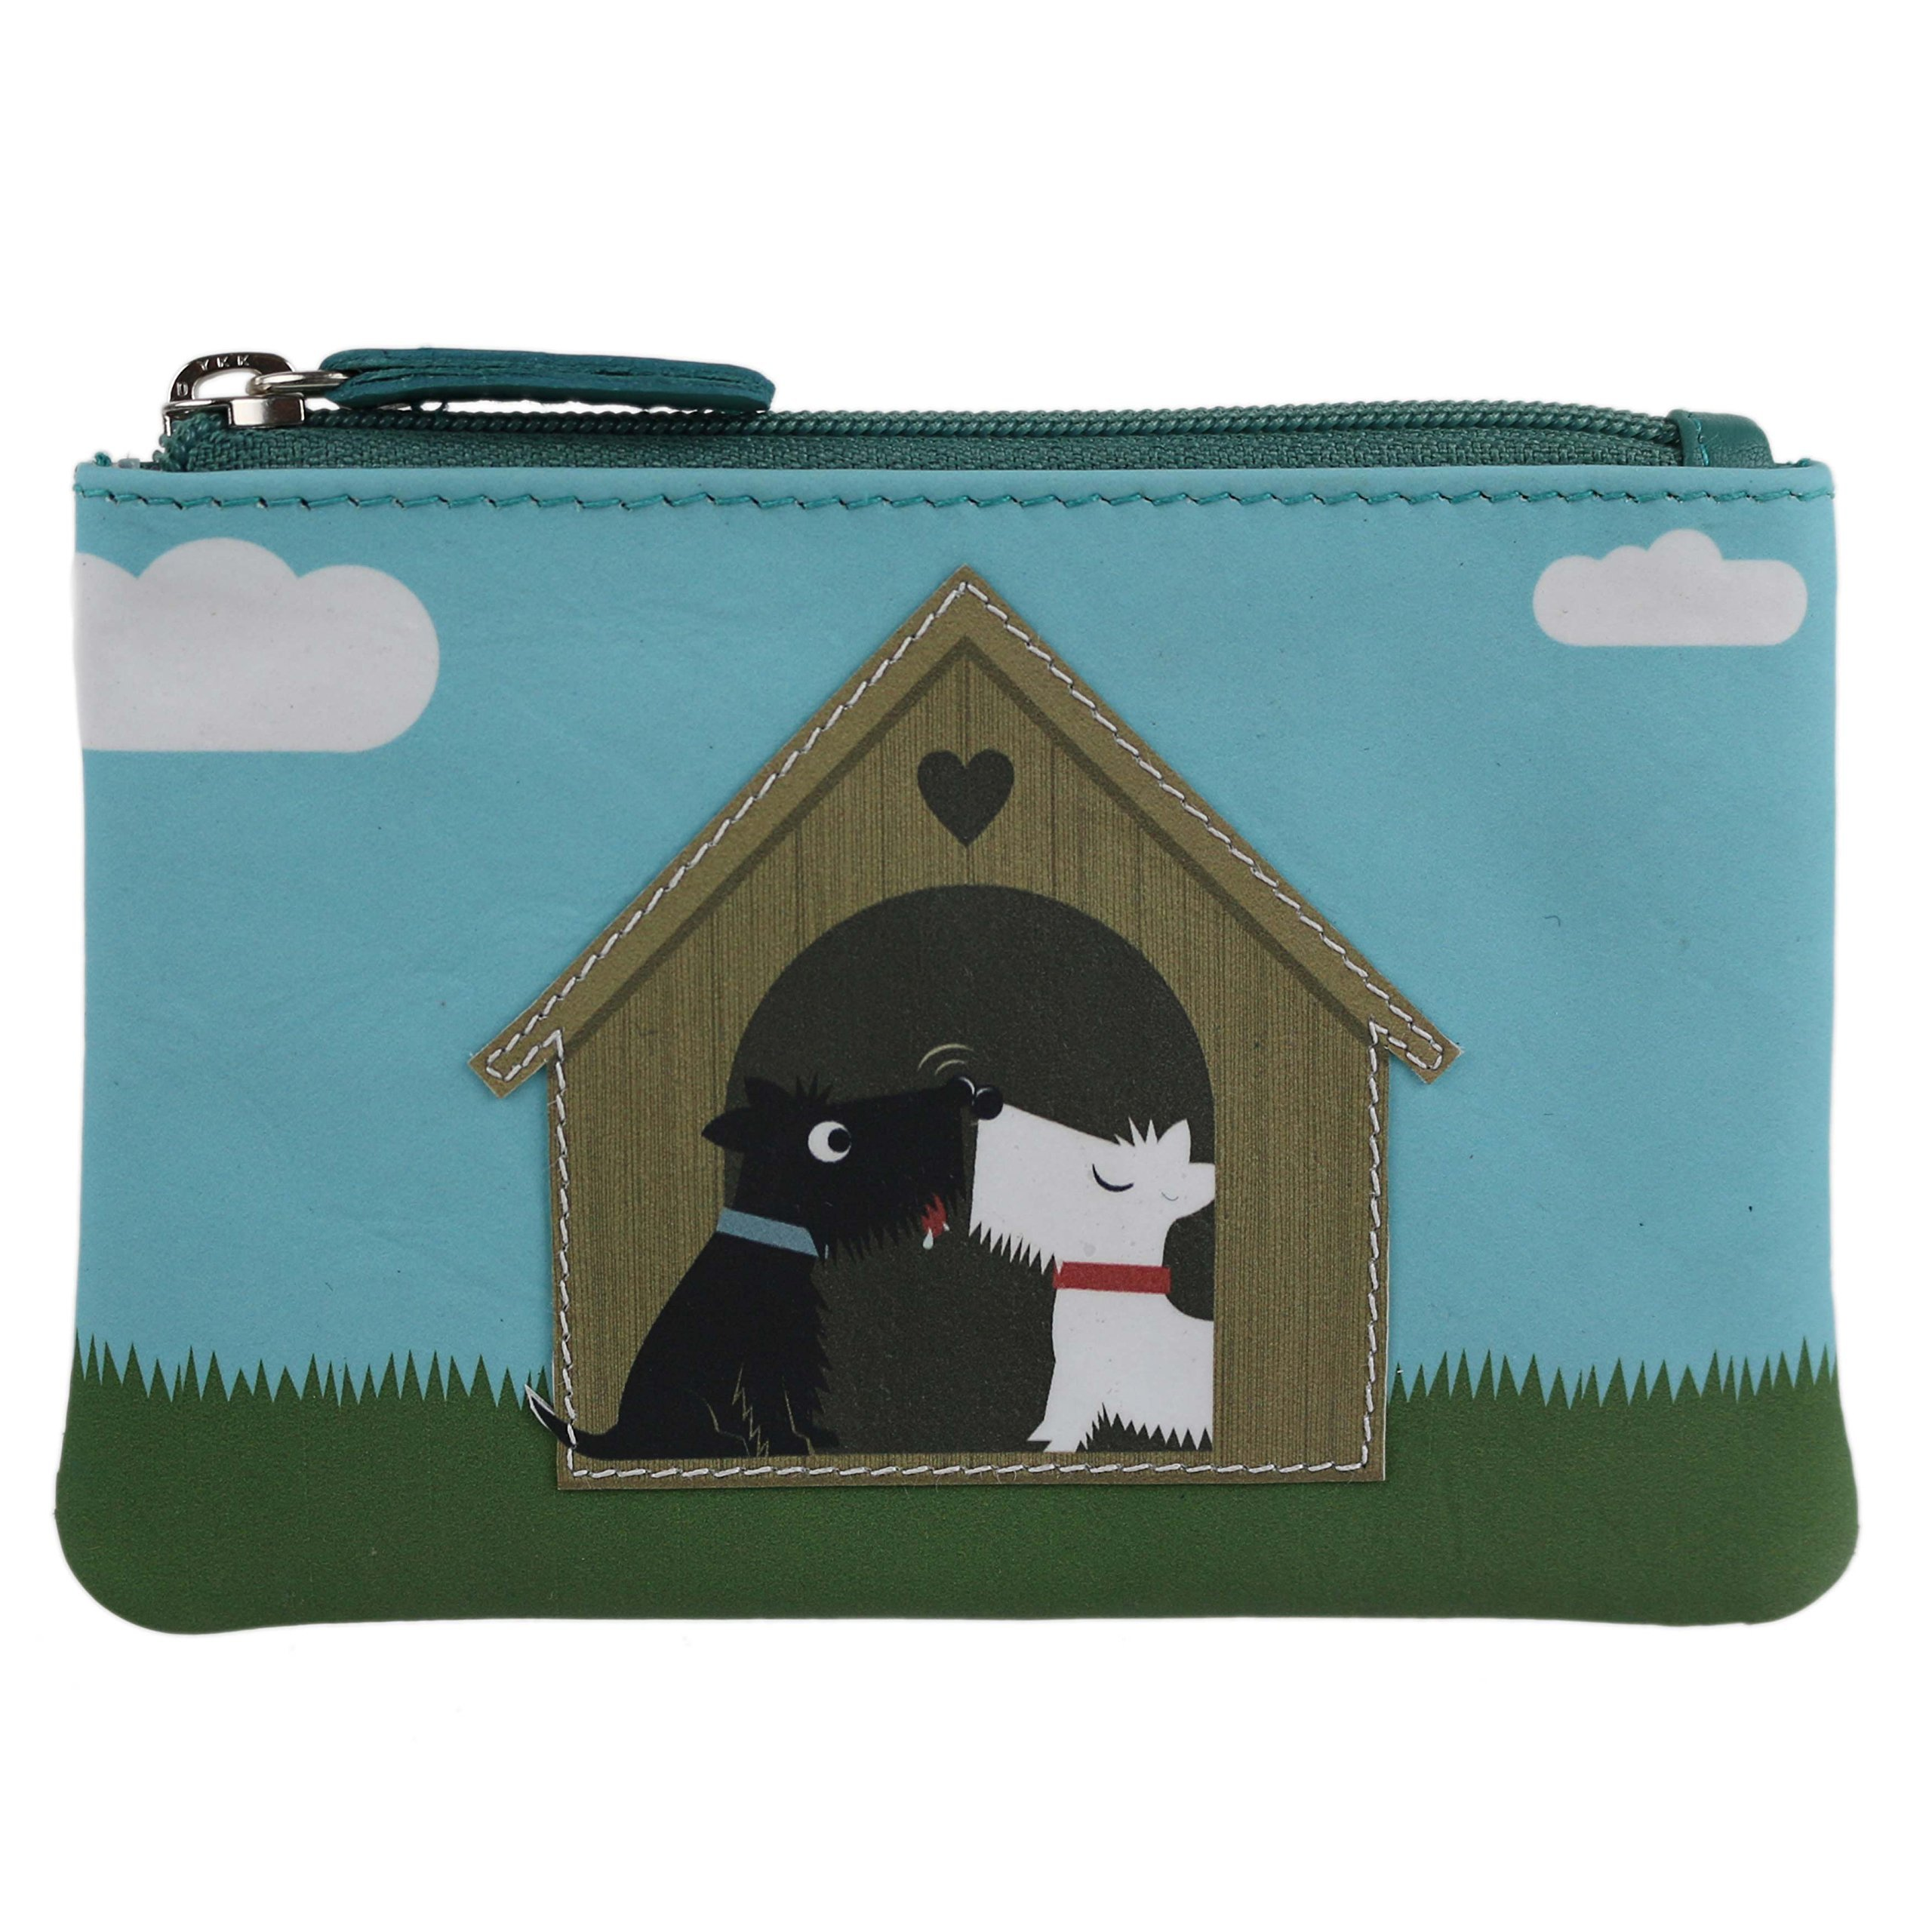 Mala Leather Women's Leather Scotty Dogs In Love Coin Purse By Mala Zipped Handy Onesize Black White